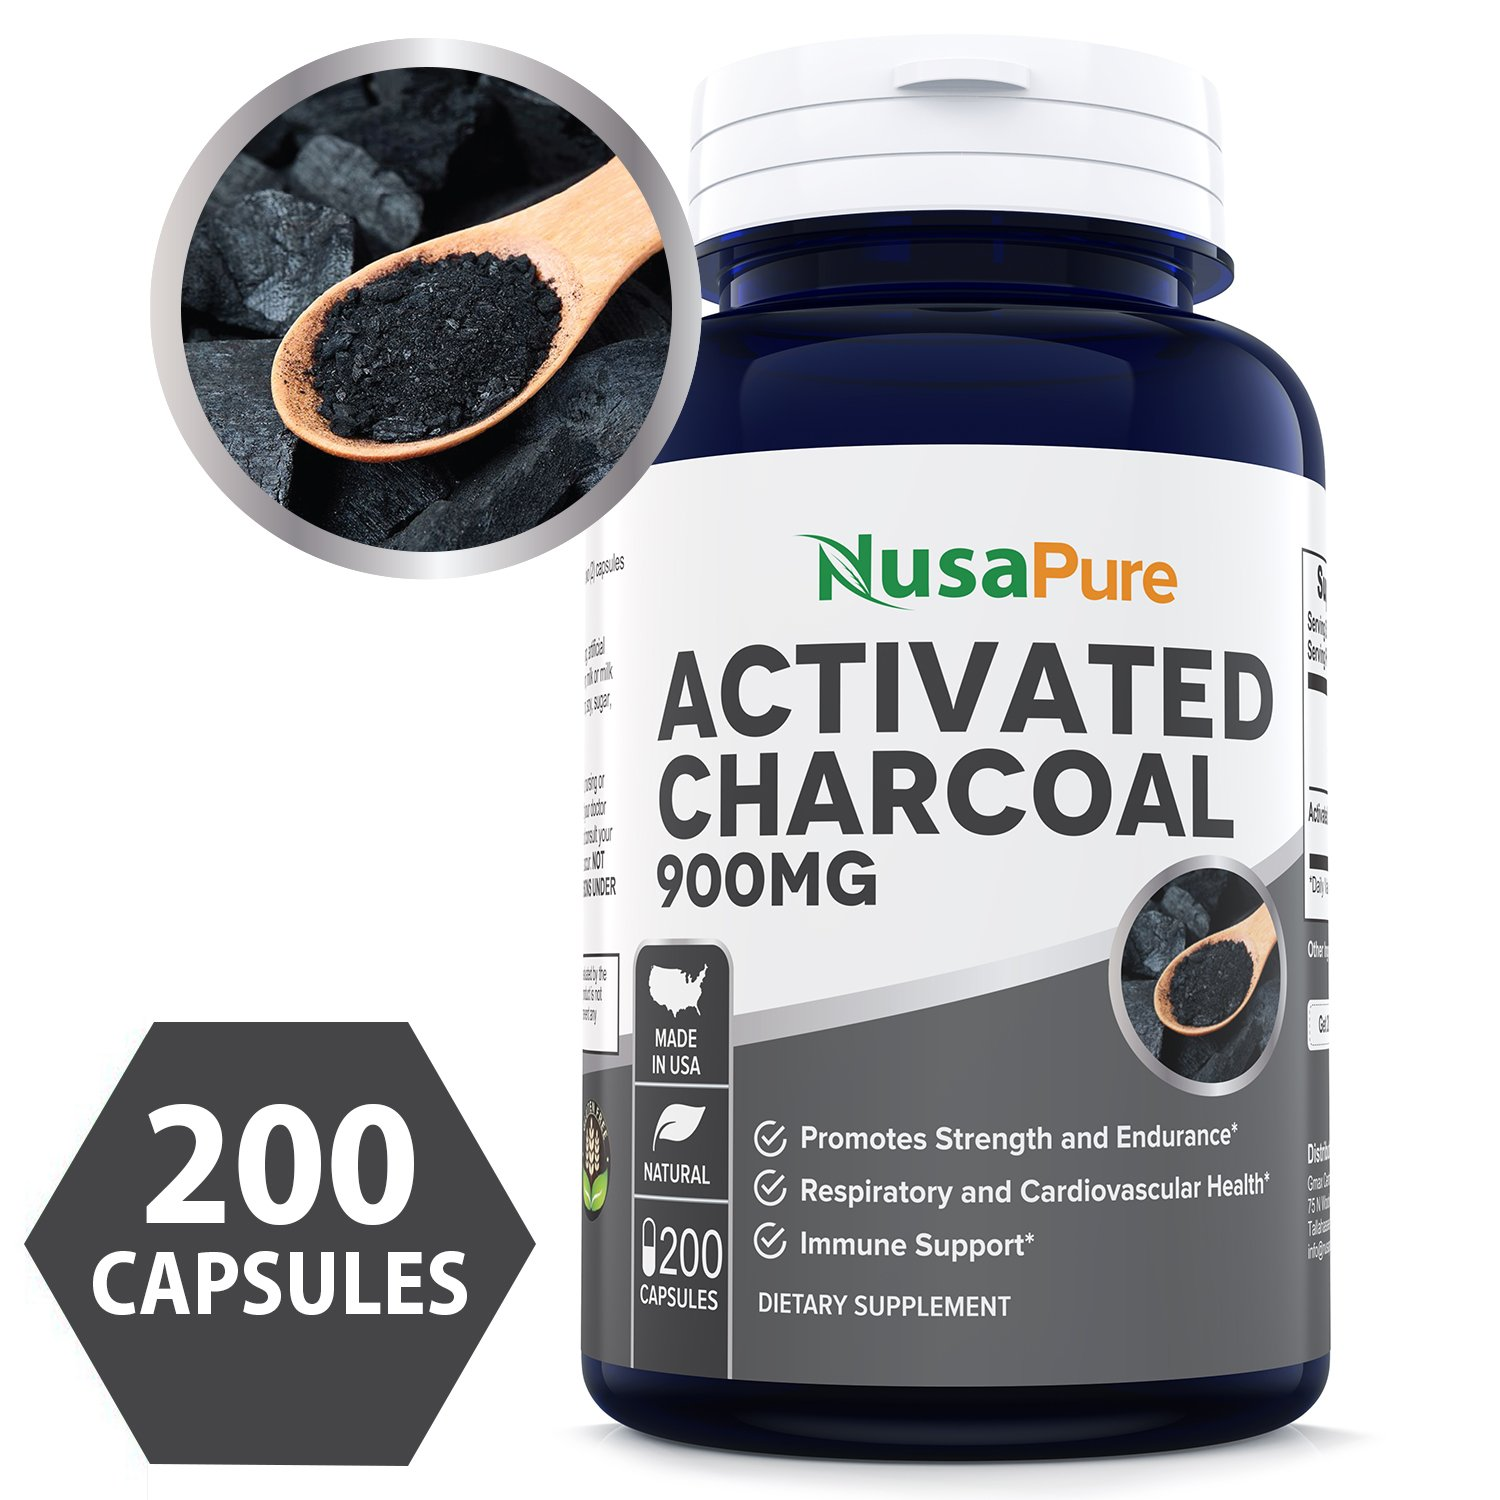 Best Activated Charcoal 900mg 200 Capsules (Non-GMO & Gluten Free) - Detox Naturally and Safely, Reduce Gas, Bloating and Indigestion - 100% Tasteless - 450mg per Caps - 100% MONEY BACK GUARANTEE!